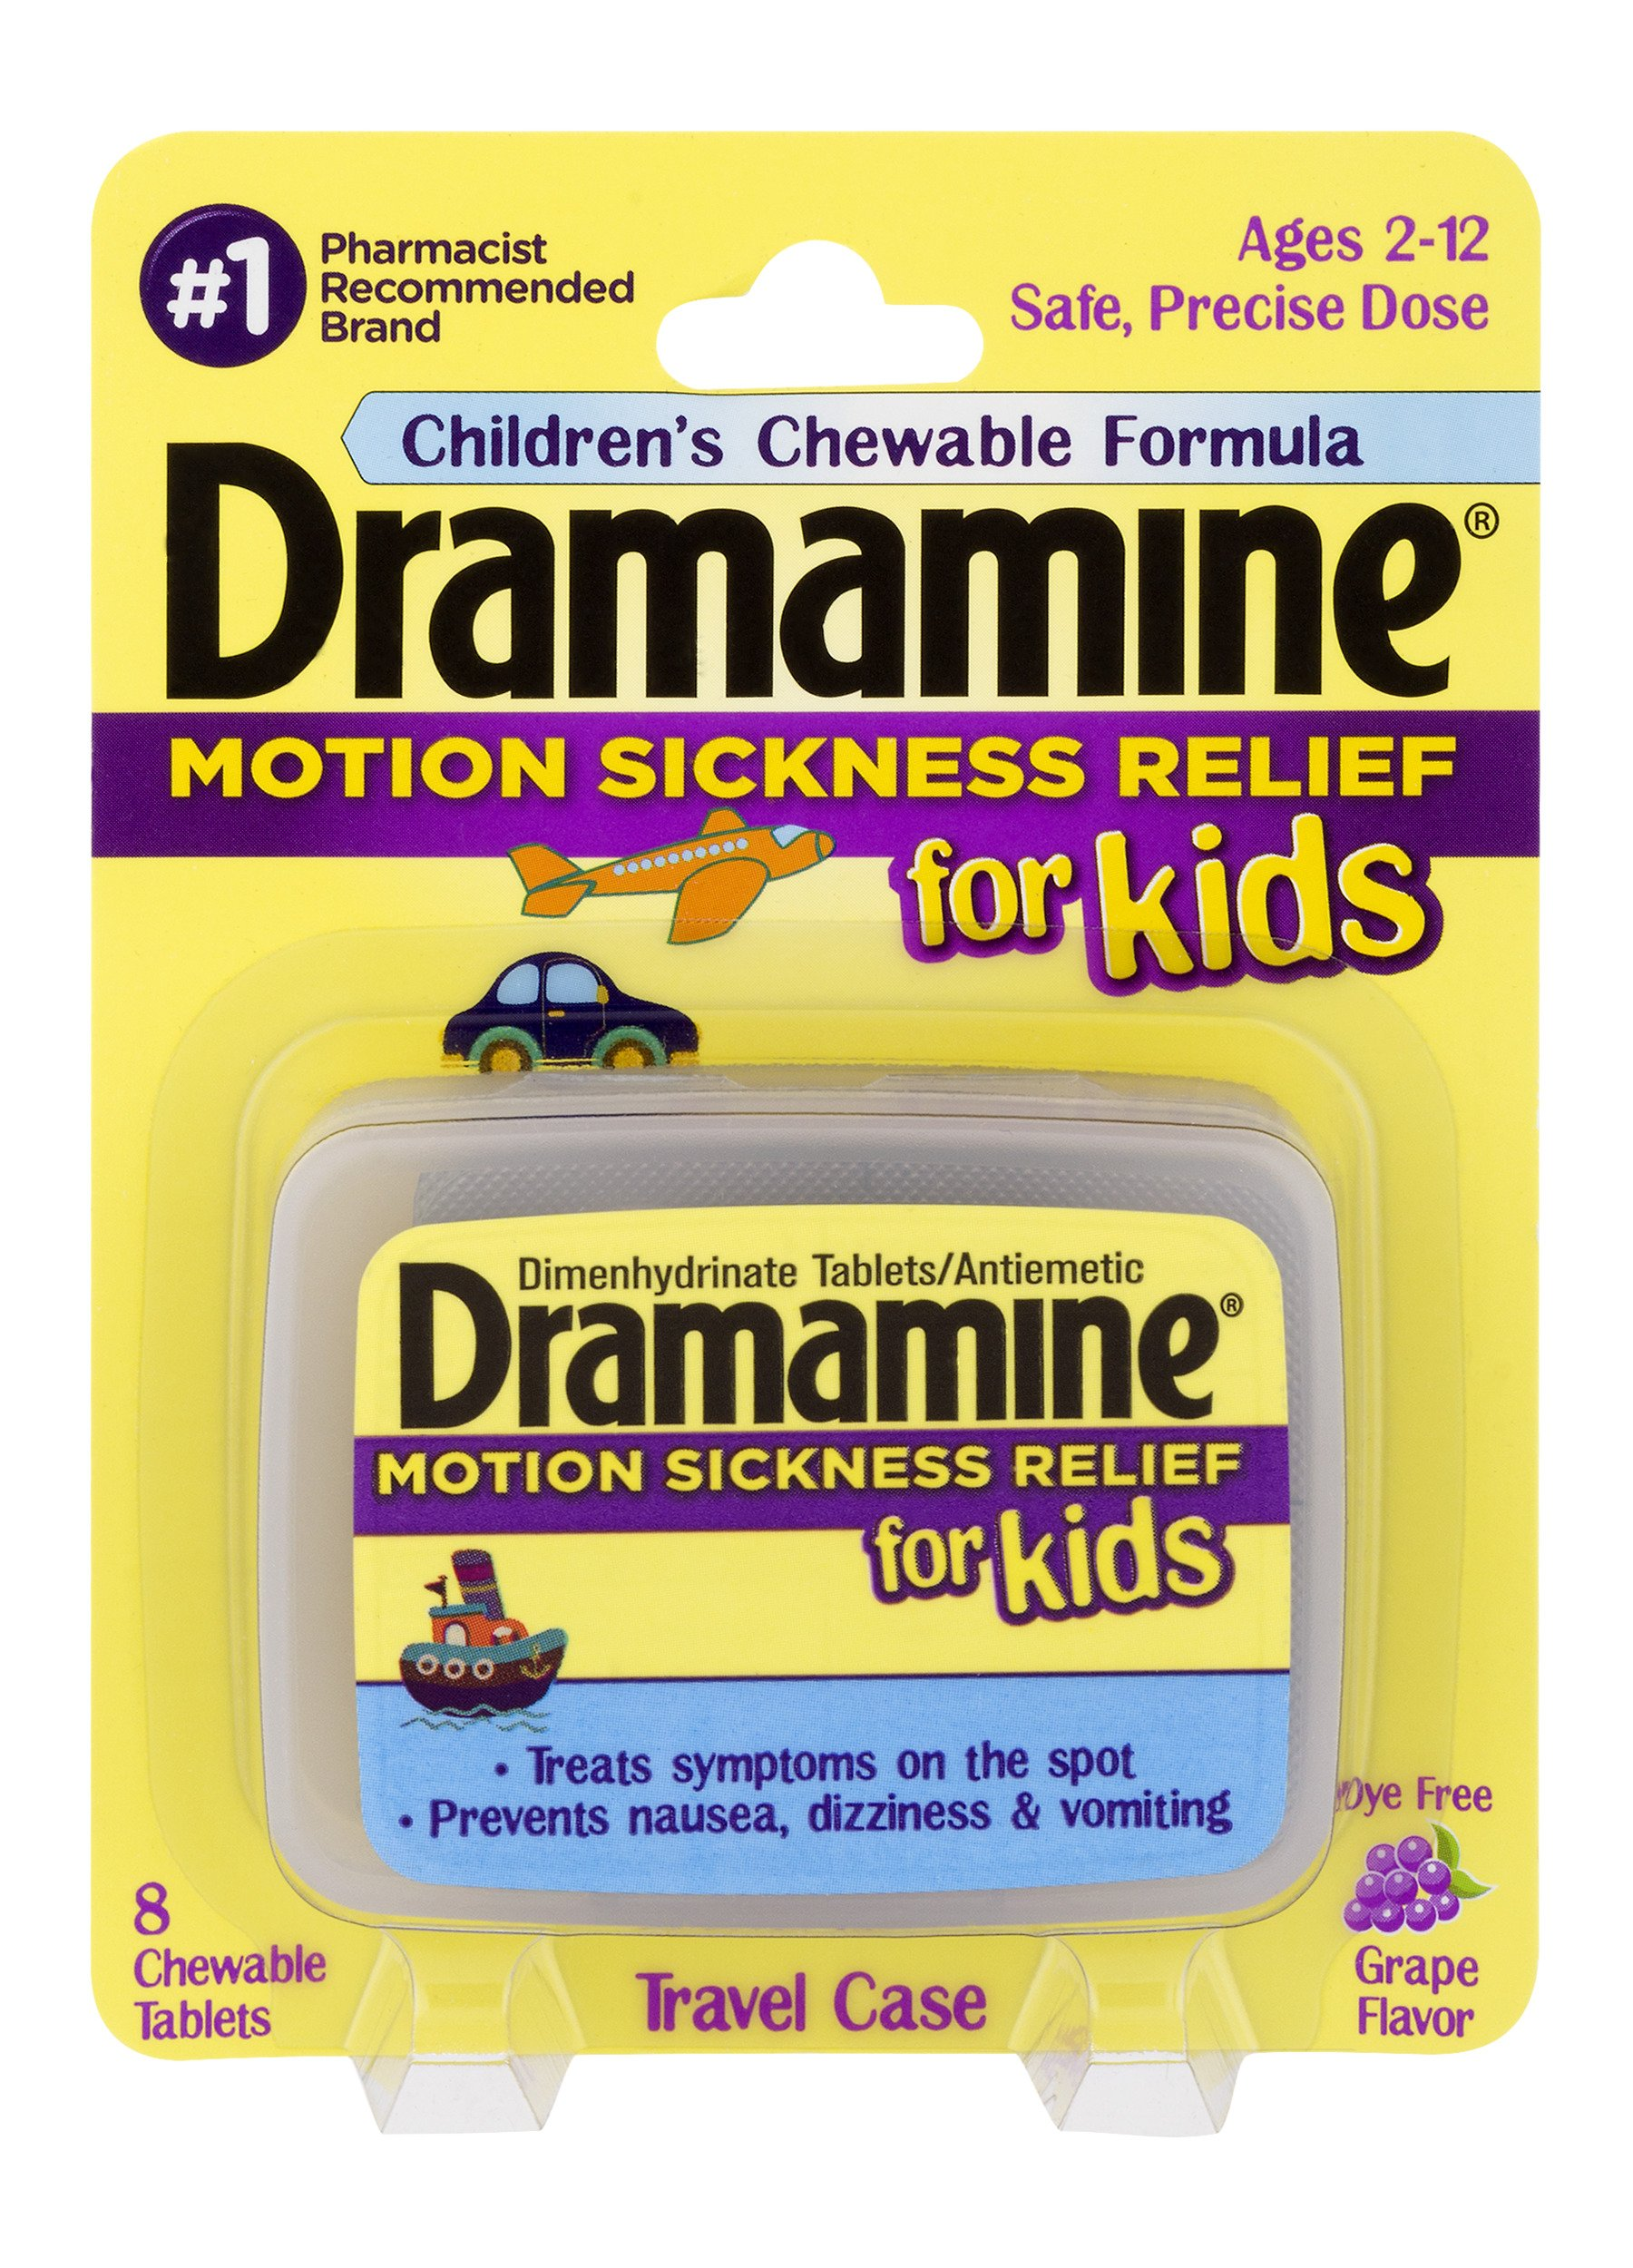 Dramamine Motion Sickness Relief for Kids 8 count,pack of 2